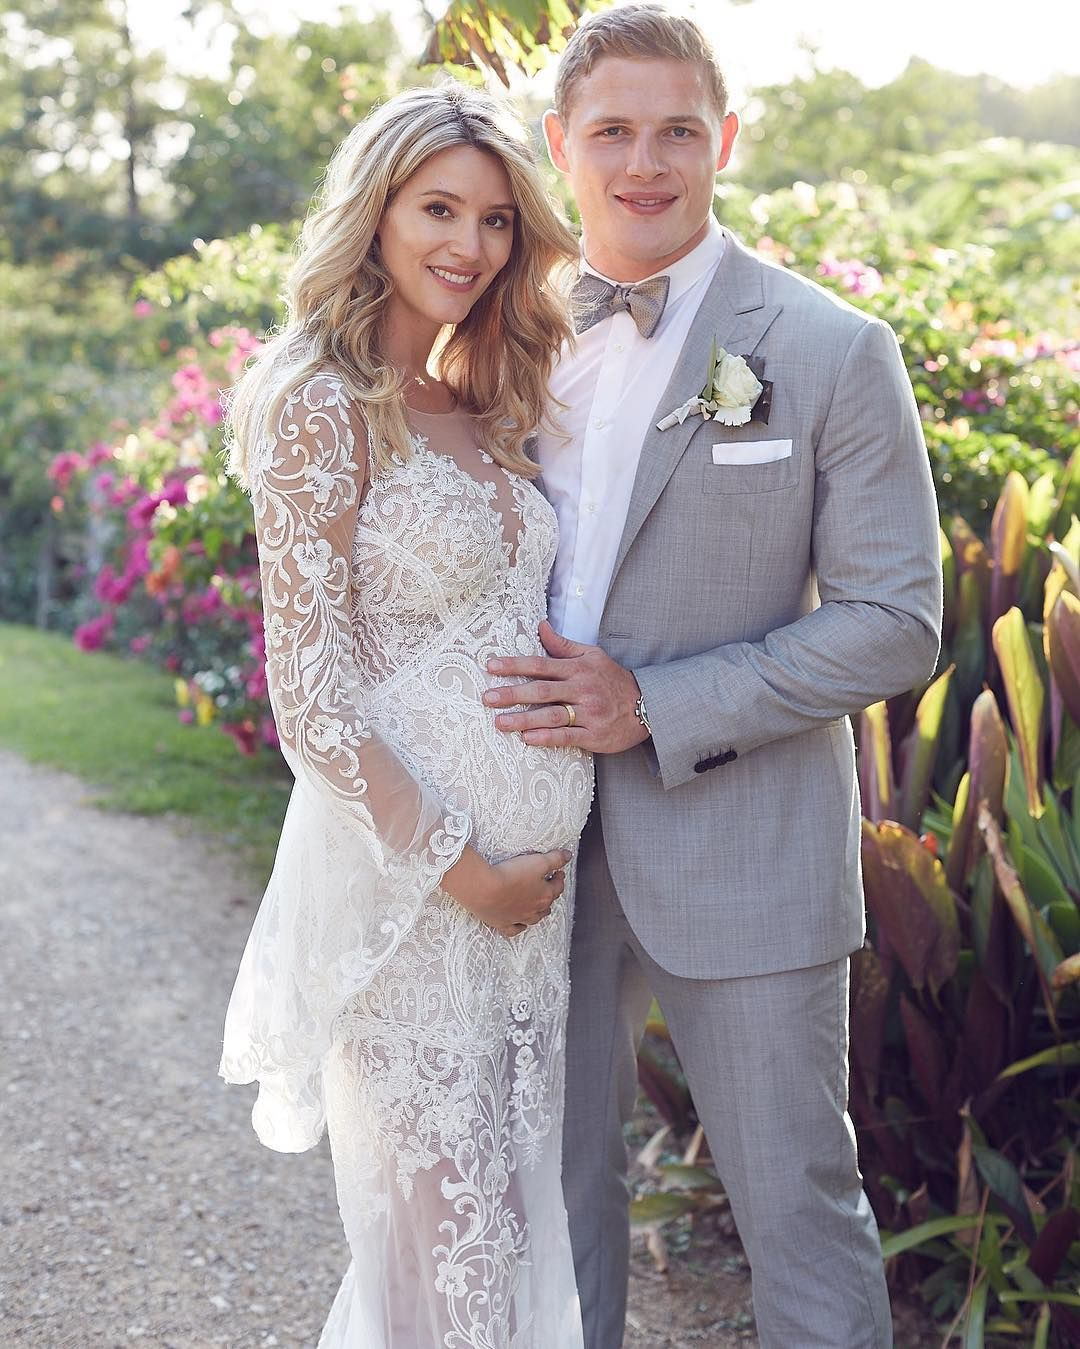 Pregnant tacky wedding dresses